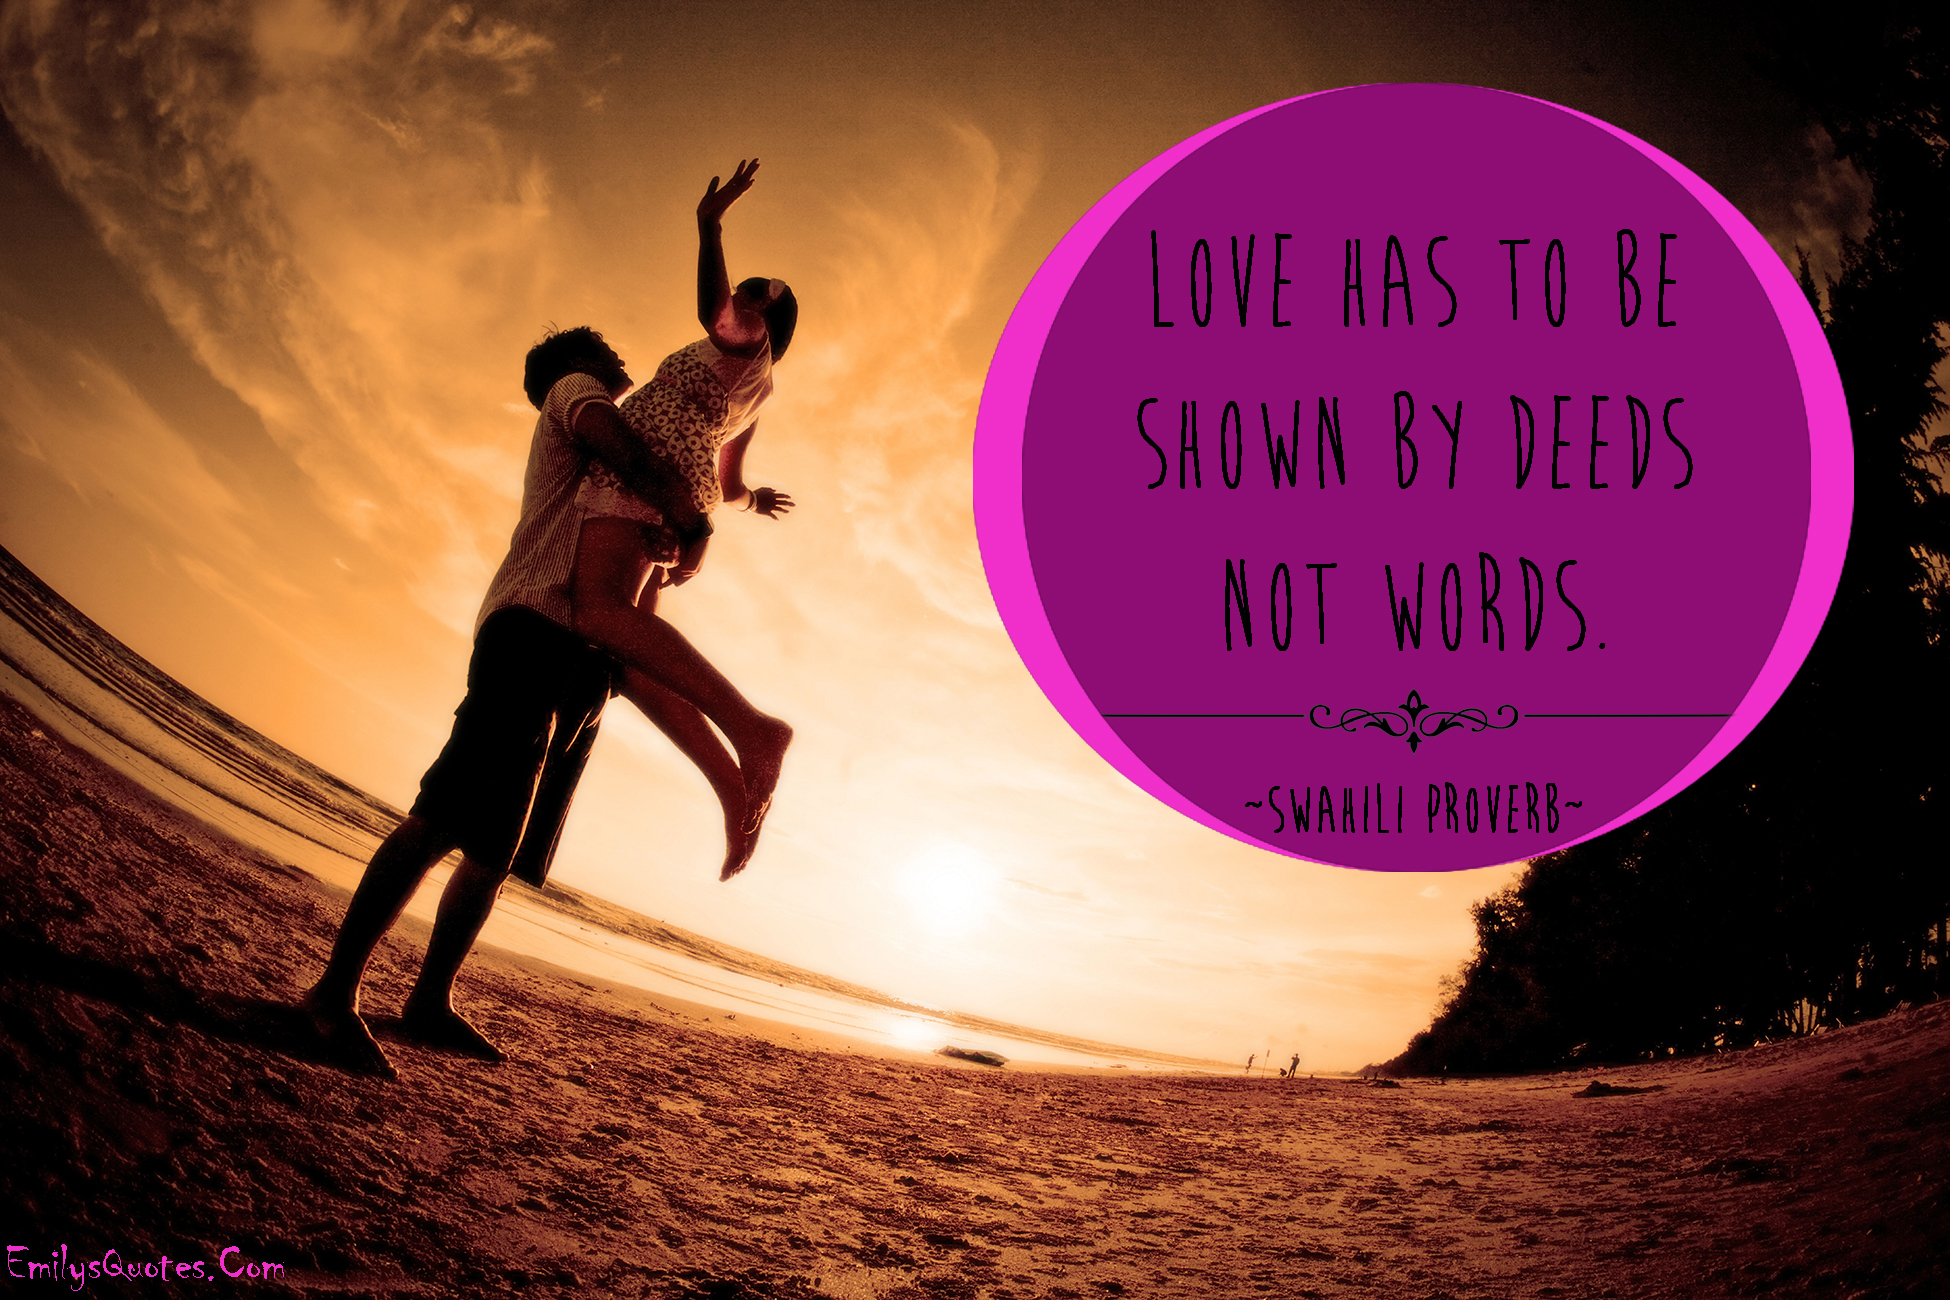 EmilysQuotes.Com - love, romantic, relationship, caring, Swahili proverb